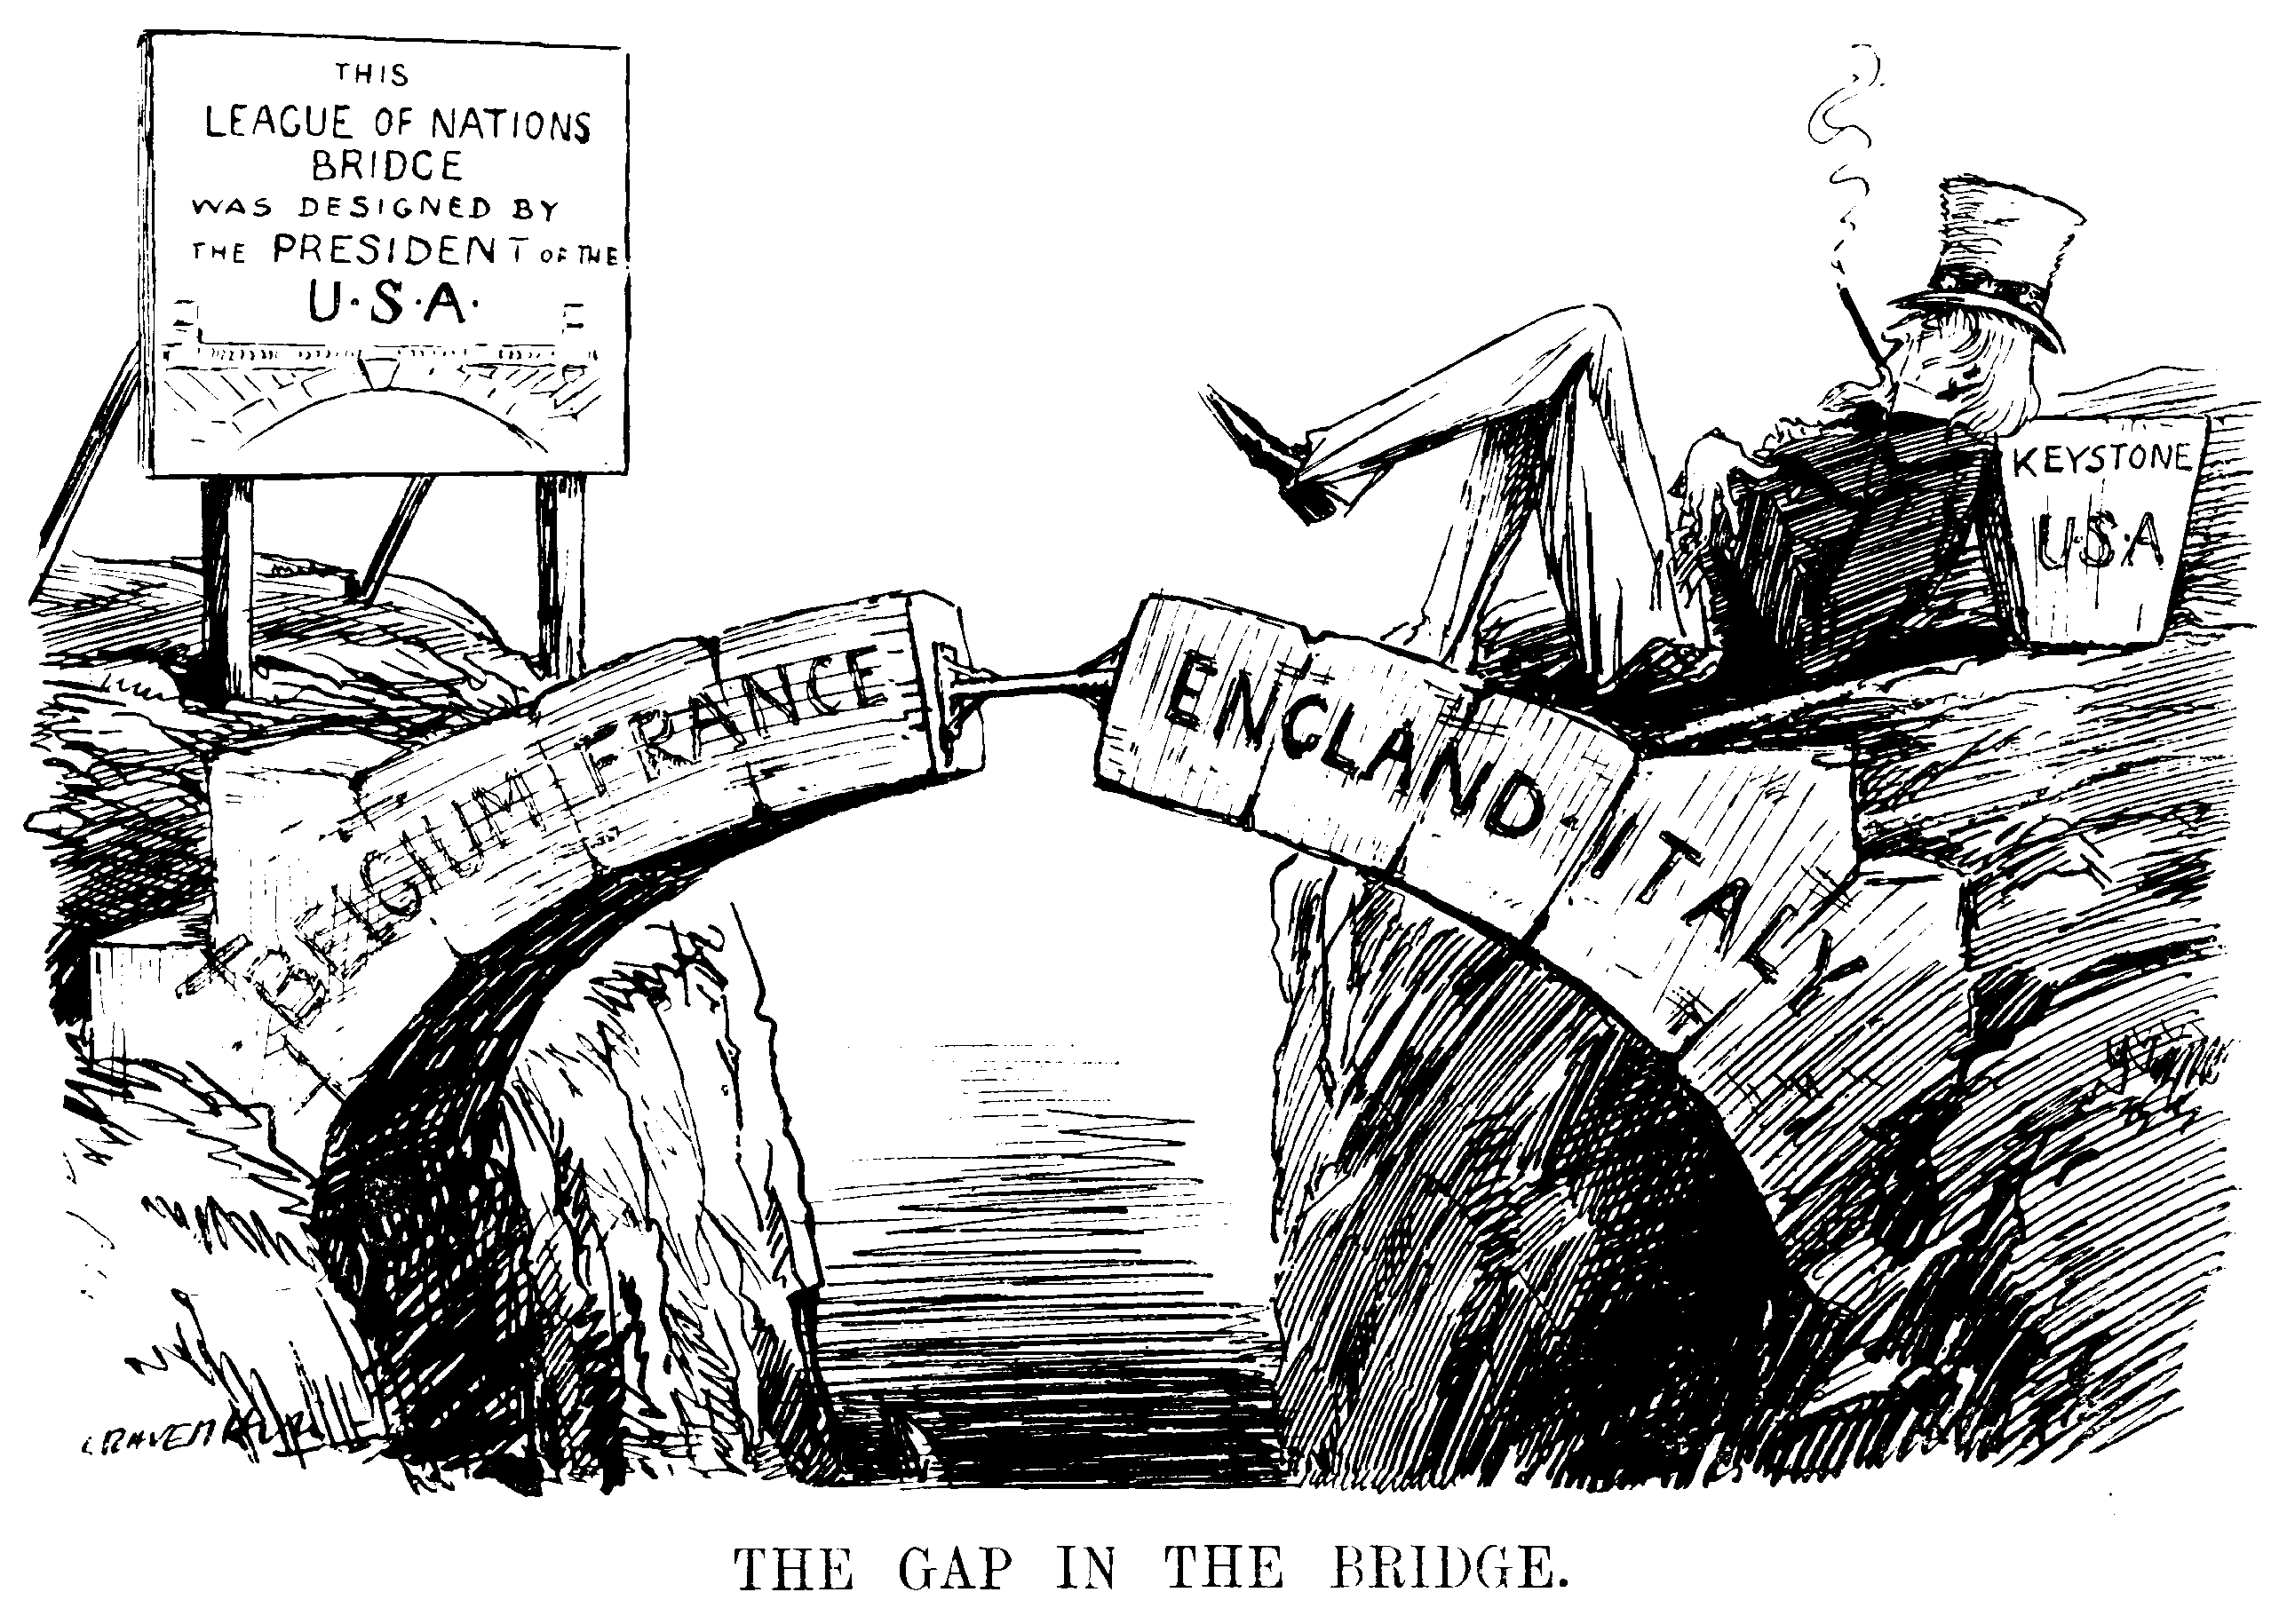 File:The Gap in the Bridge.png - Wikimedia Commons